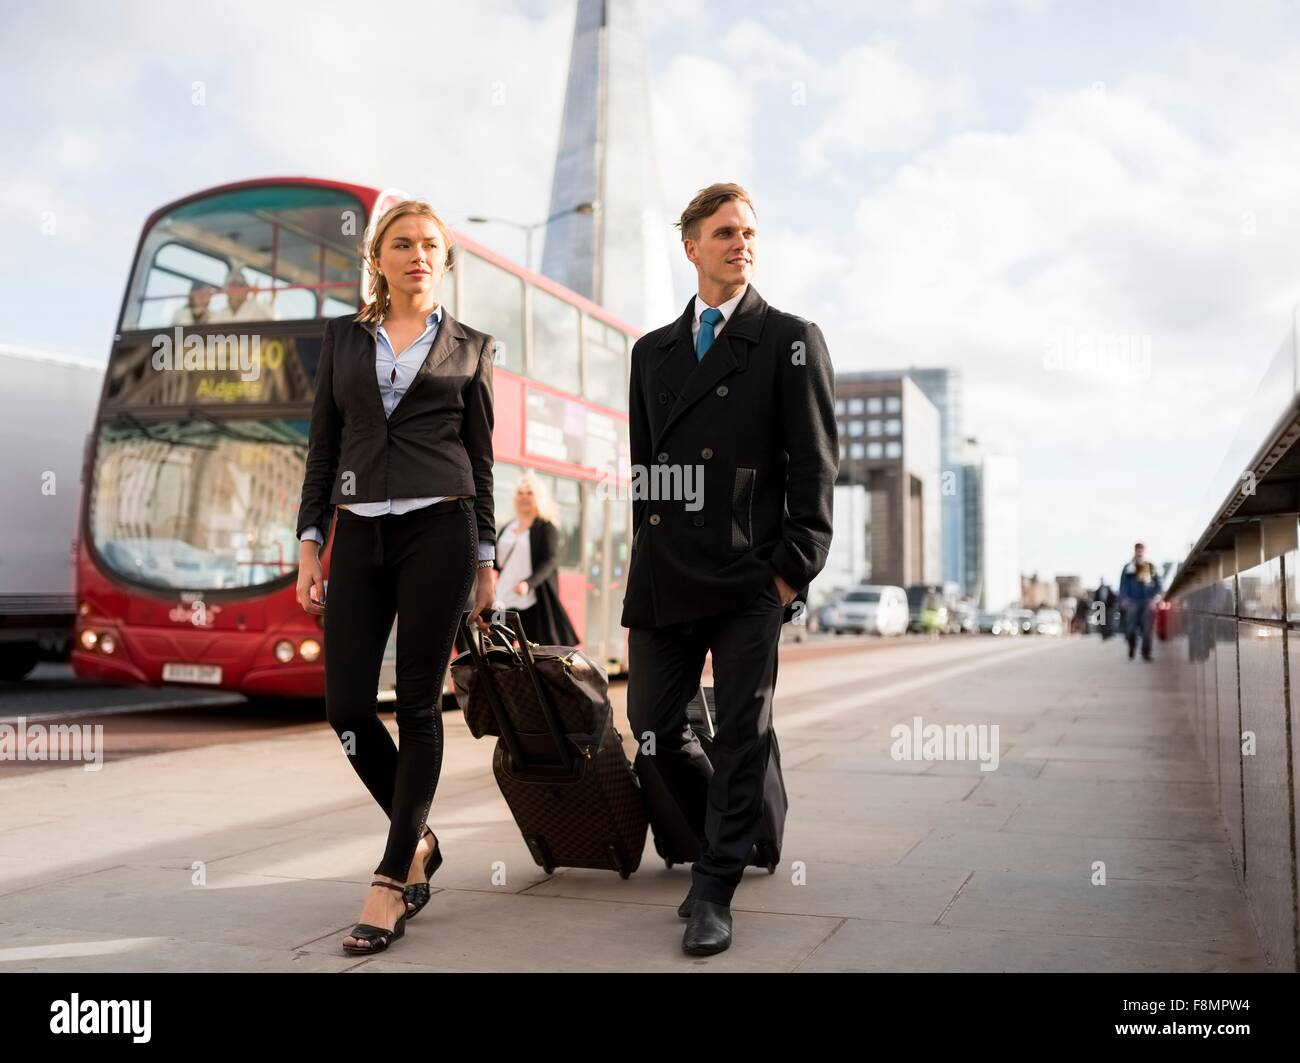 Businessman and businesswoman on business trip, London, UK Stock Photo